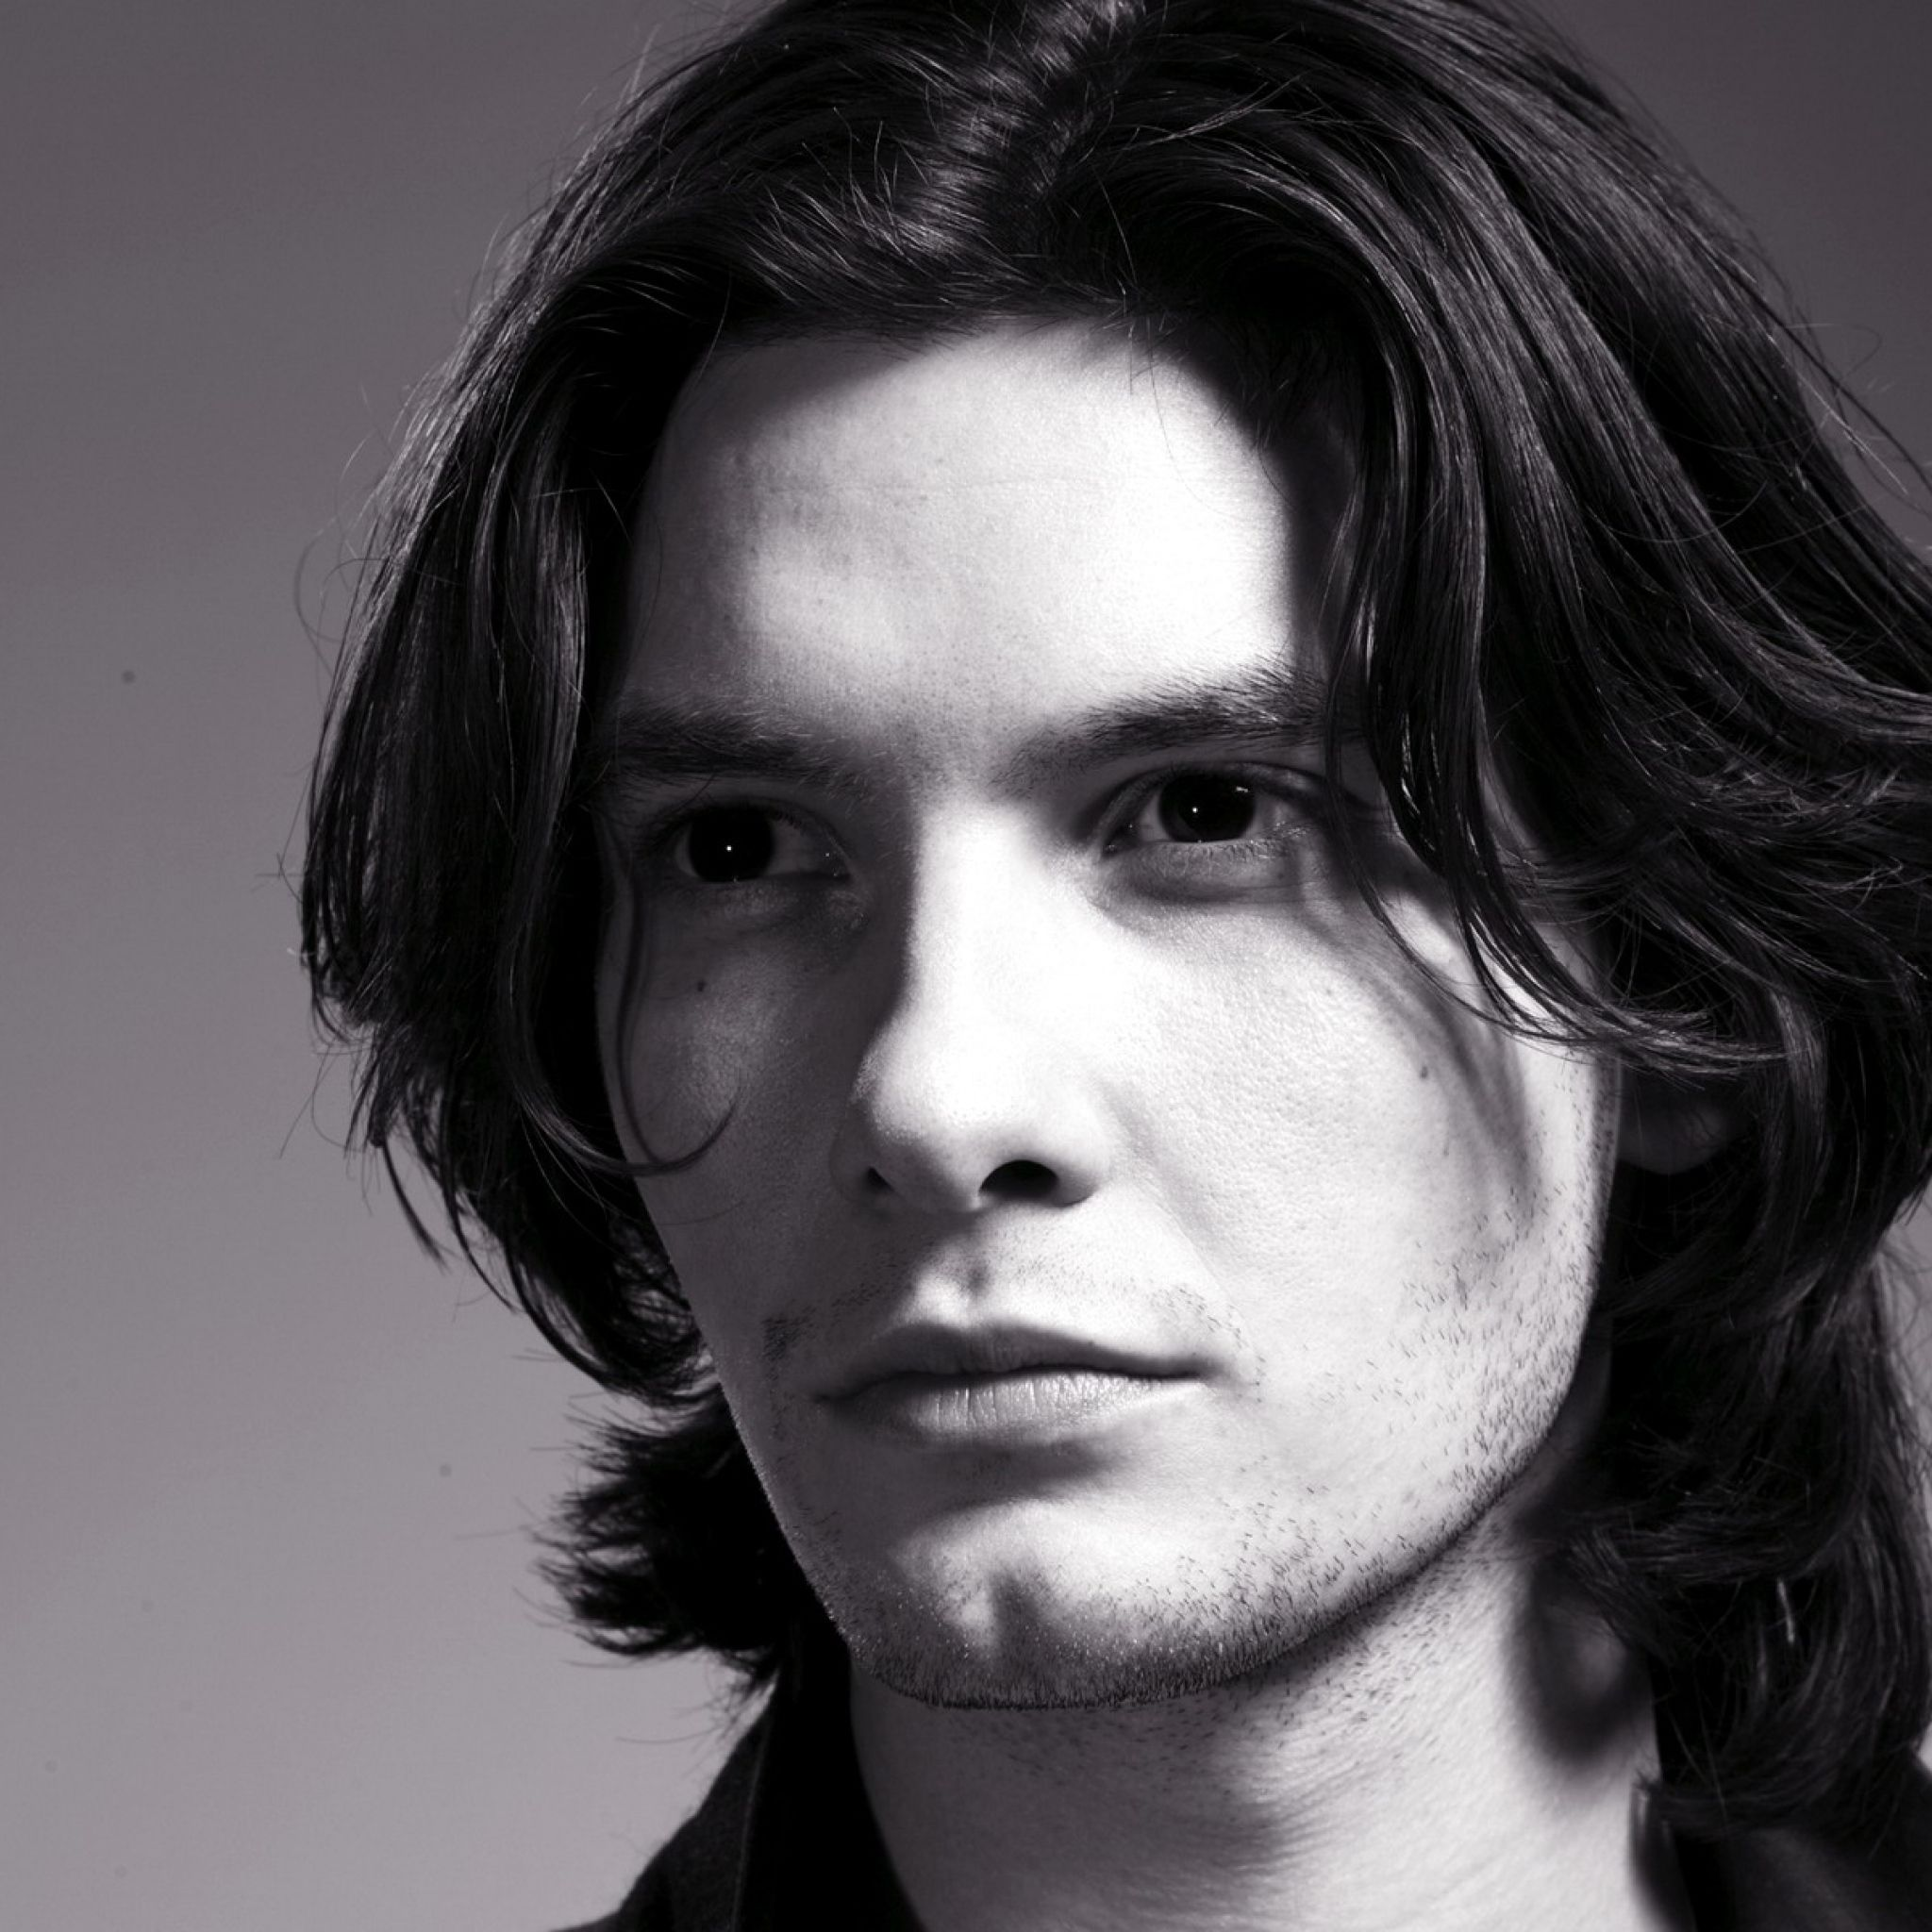 Download Wallpaper 2048x2048 Ben Barnes Actor Brunette Man Long Hair Styles Men Long Hair Styles Hair Photo